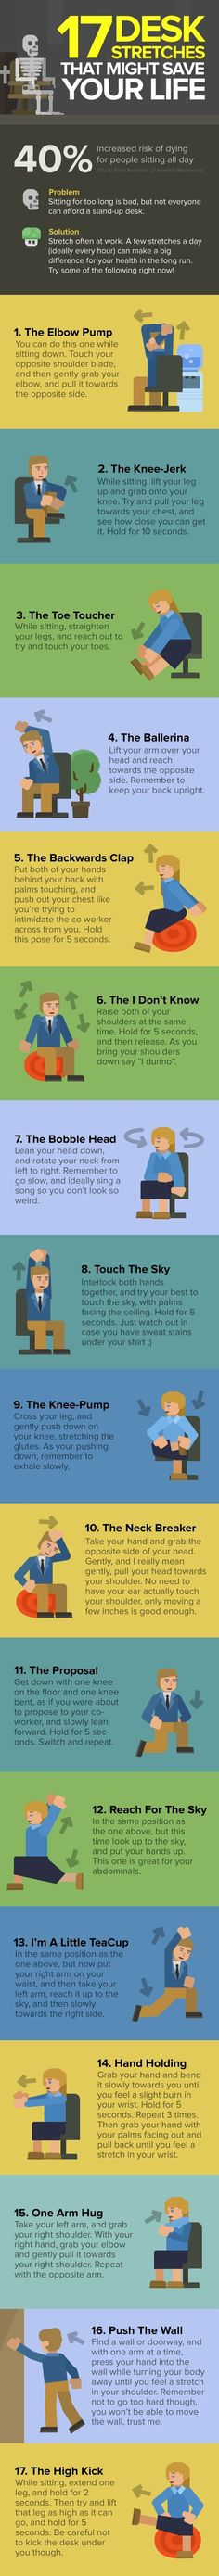 17 Desk exercises that might just save your life. Don't fall victim to office syndrome. Do something about it. If you'd like the professional touch contact us at The Bodywise Clinic and get a complete assessment. We'll also set you up with a plan for stretching and combatting posture and health issues resulting from the deskbound life.  Call us 016111444 or email: info@thebodywiseclinic.ie